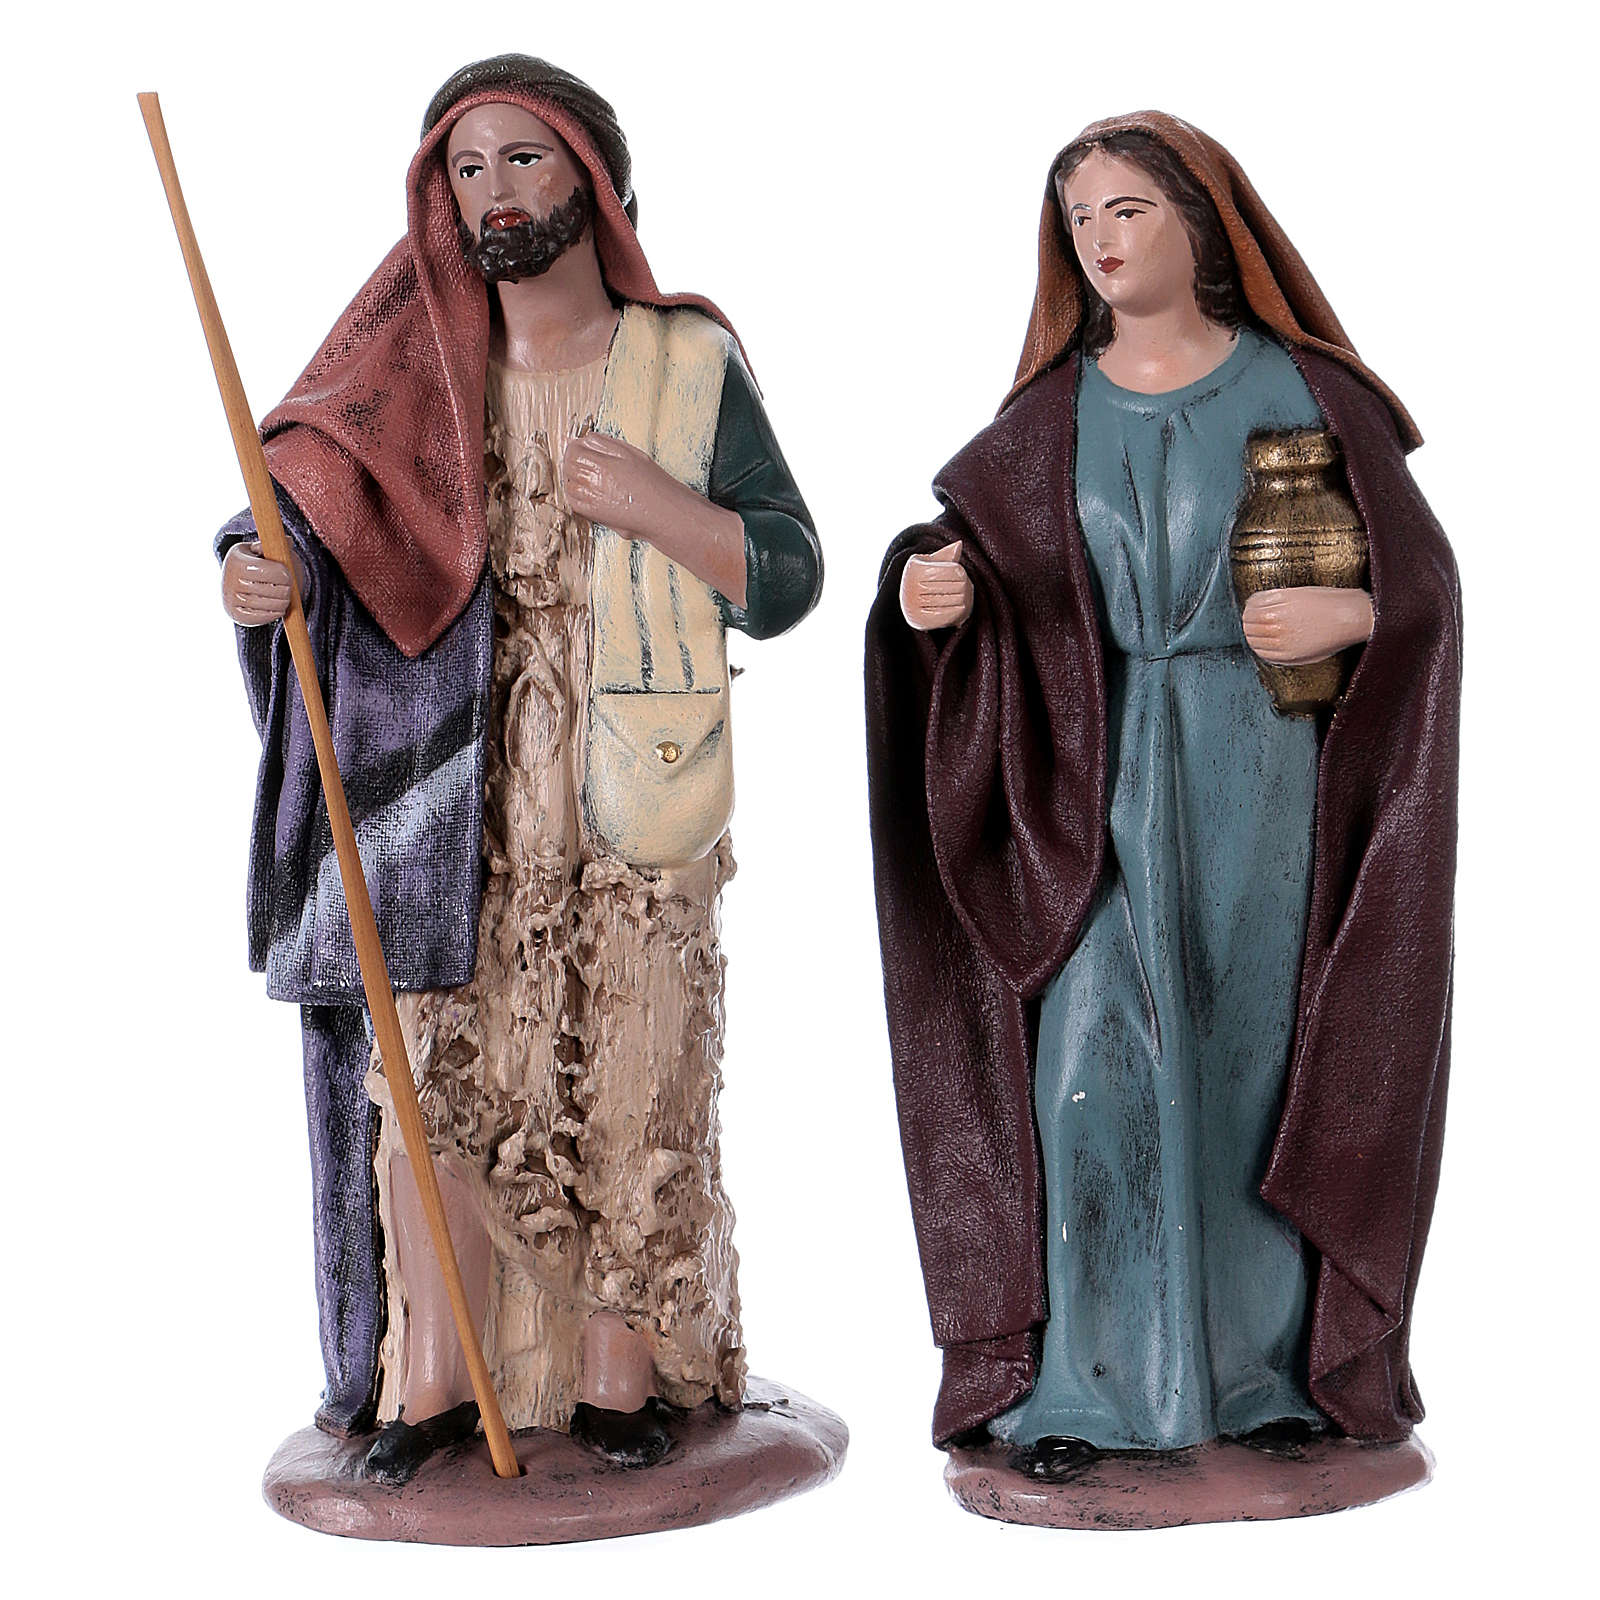 Traveller and woman with jar for Nativity scene in Spanish style, terracotta rigurines 14 cm 3